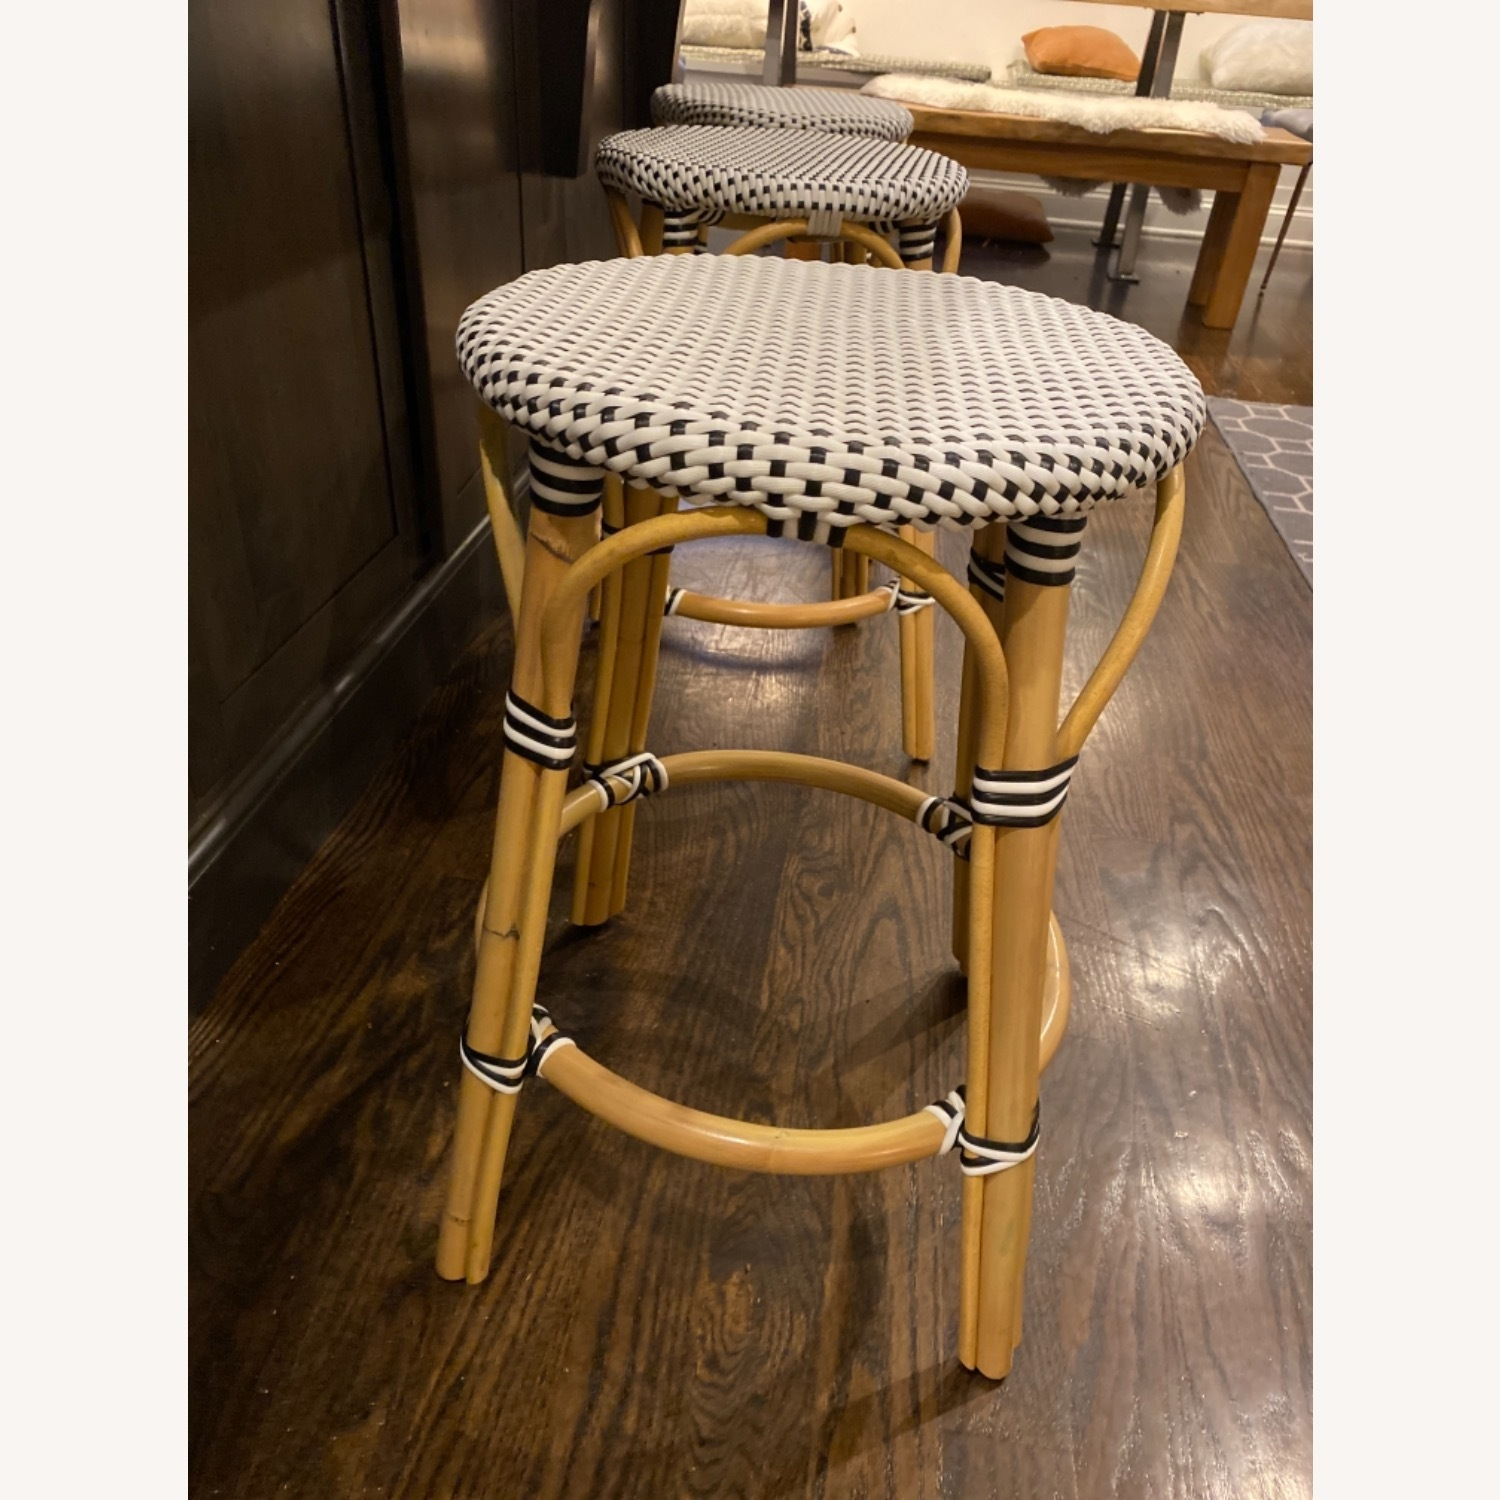 Wayfair (Serena Lily style) Counter Stools - image-4